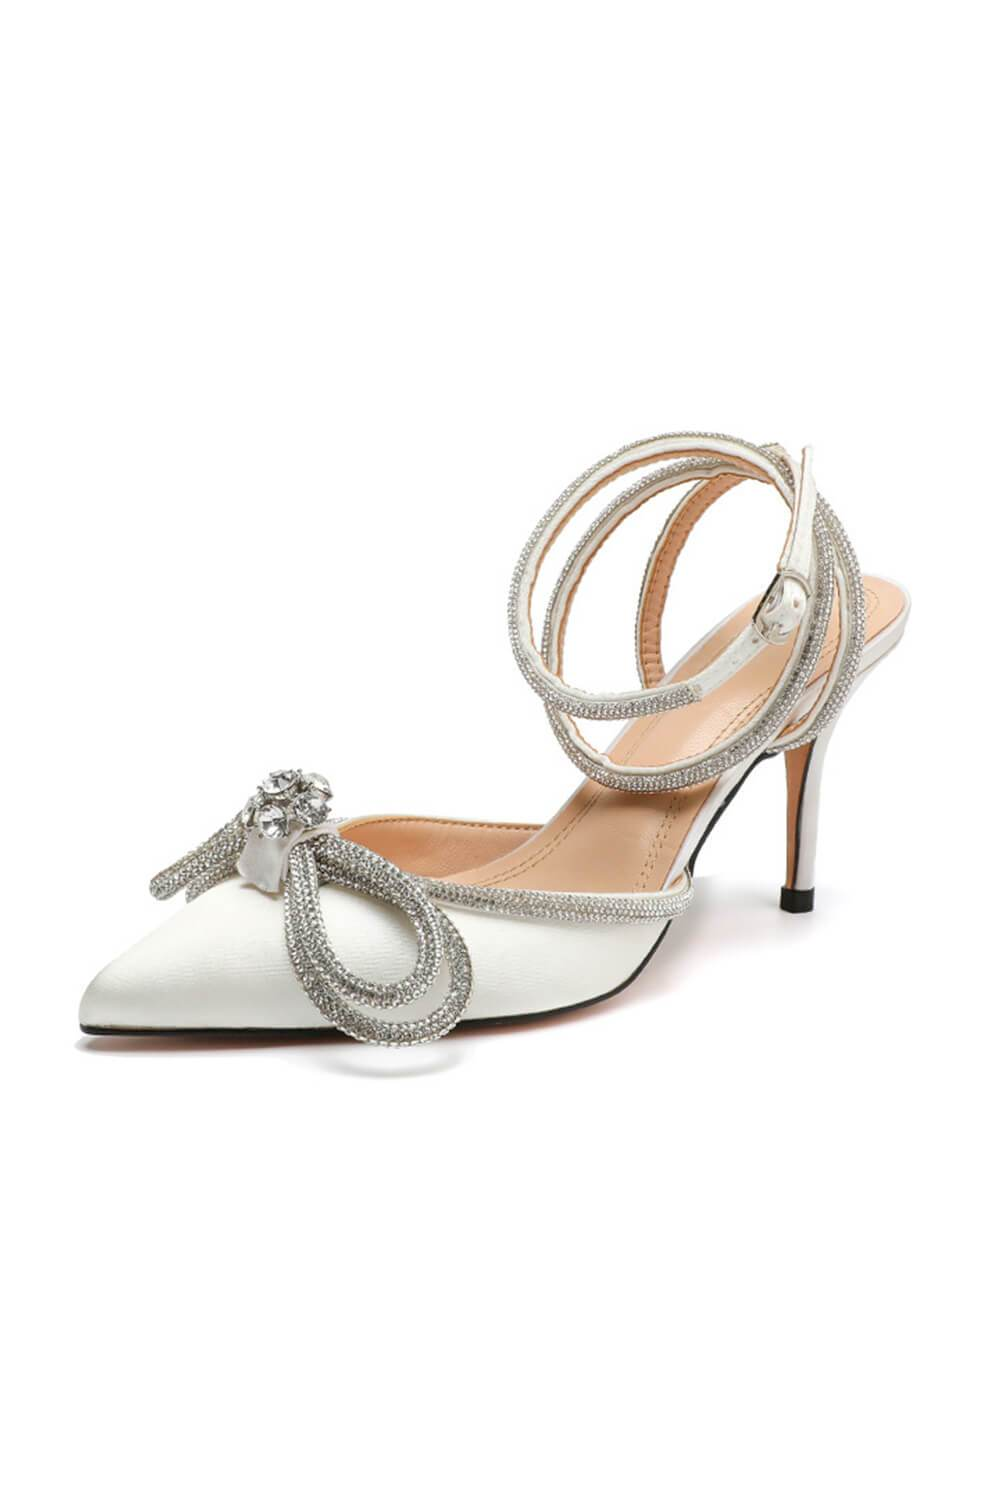 White Wrap Around Diamante Bow High Heel